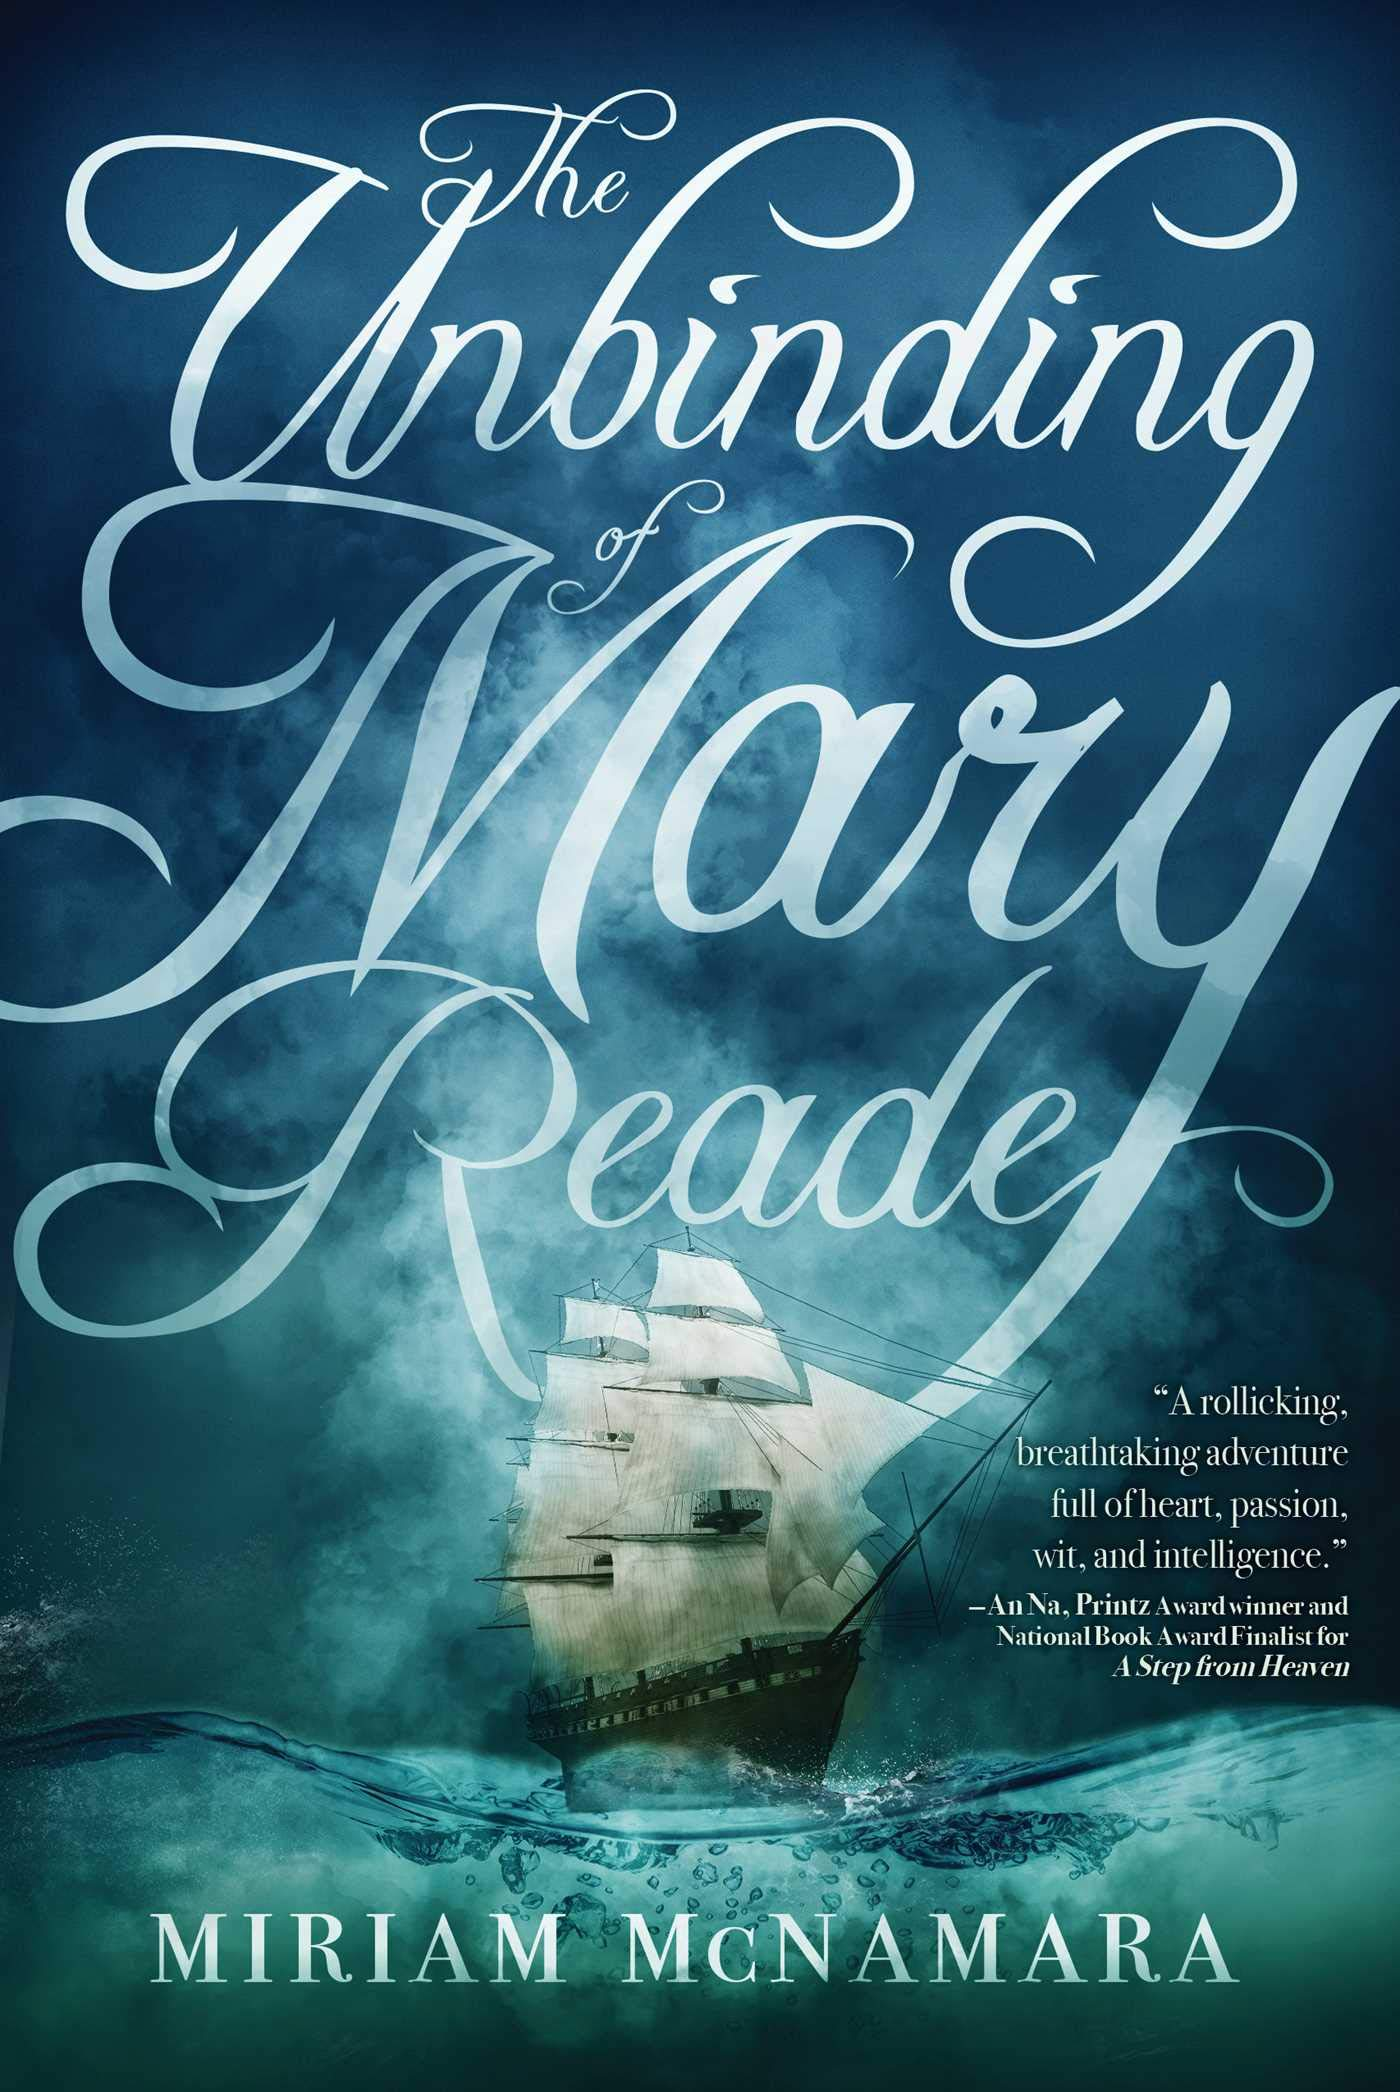 Amazon.com: The Unbinding of Mary Reade (9781510727052): McNamara ...